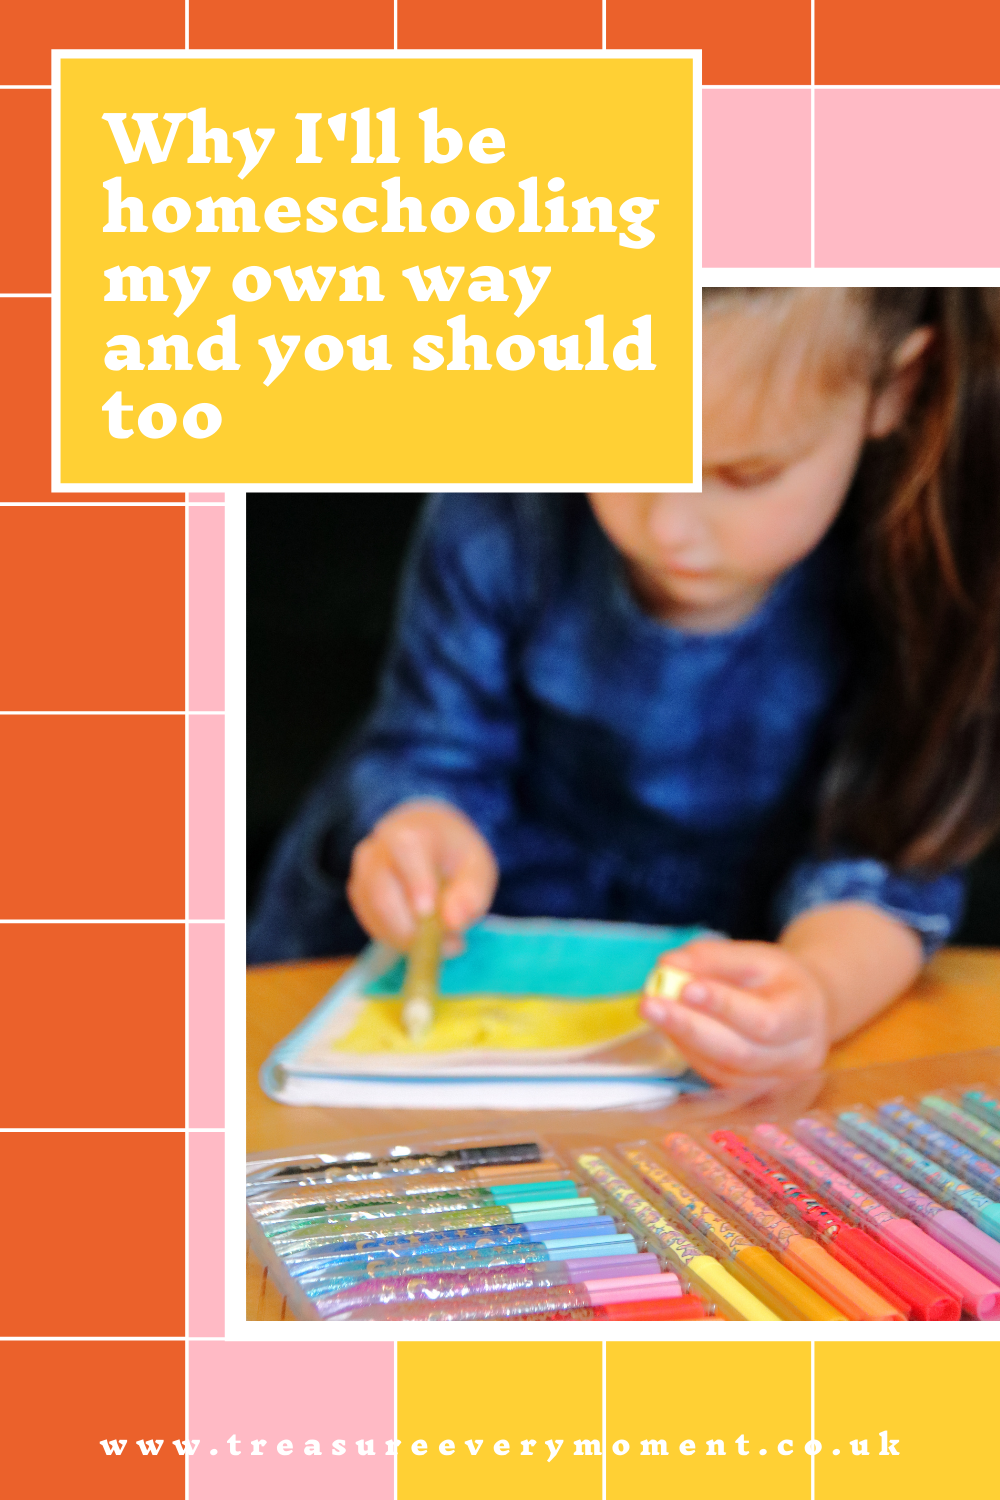 PARENTHOOD: Why I'll be homeschooling my own way and you should too